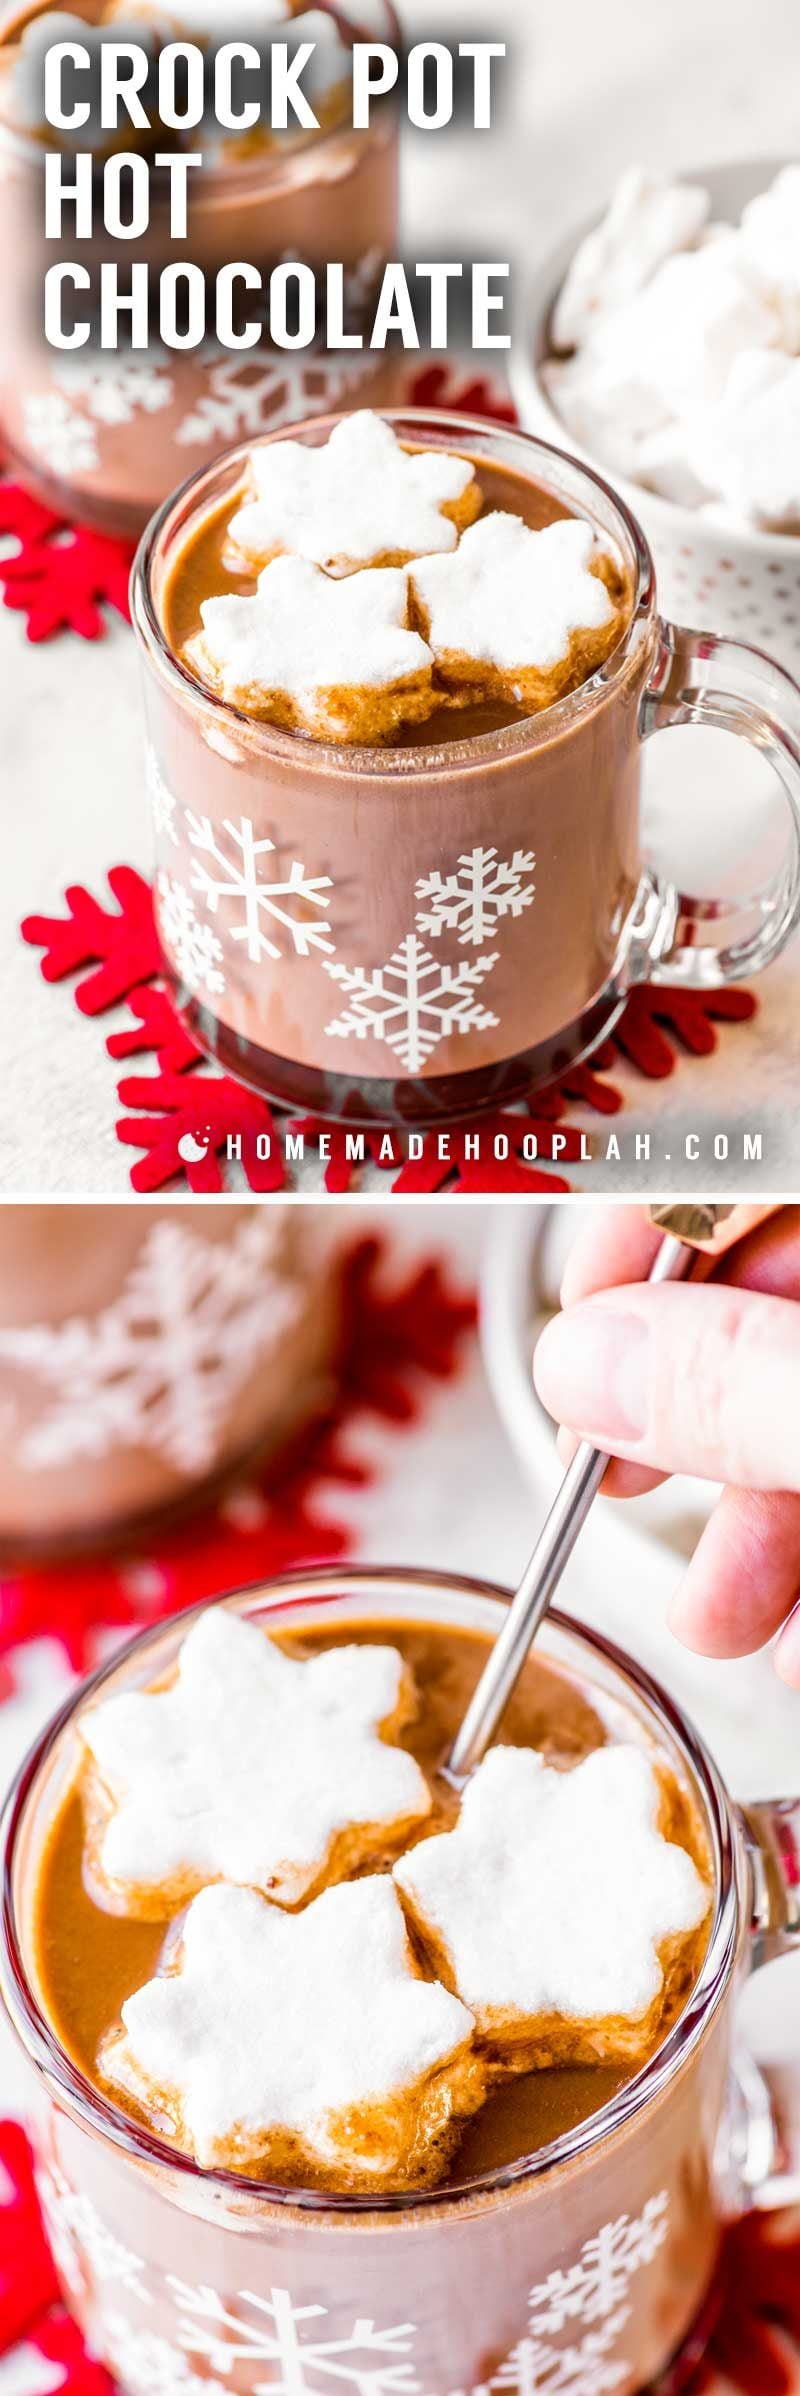 Crock Pot Hot Chocolate! Warm up this winter season with a creamy hot cup of chocolate made in a crock pot. This easy recipe is completely hands-off and perfect for limiting your time off the couch or out of bed. Garnish with mini marshmallows for the best sugar therapy! | HomemadeHooplah.com